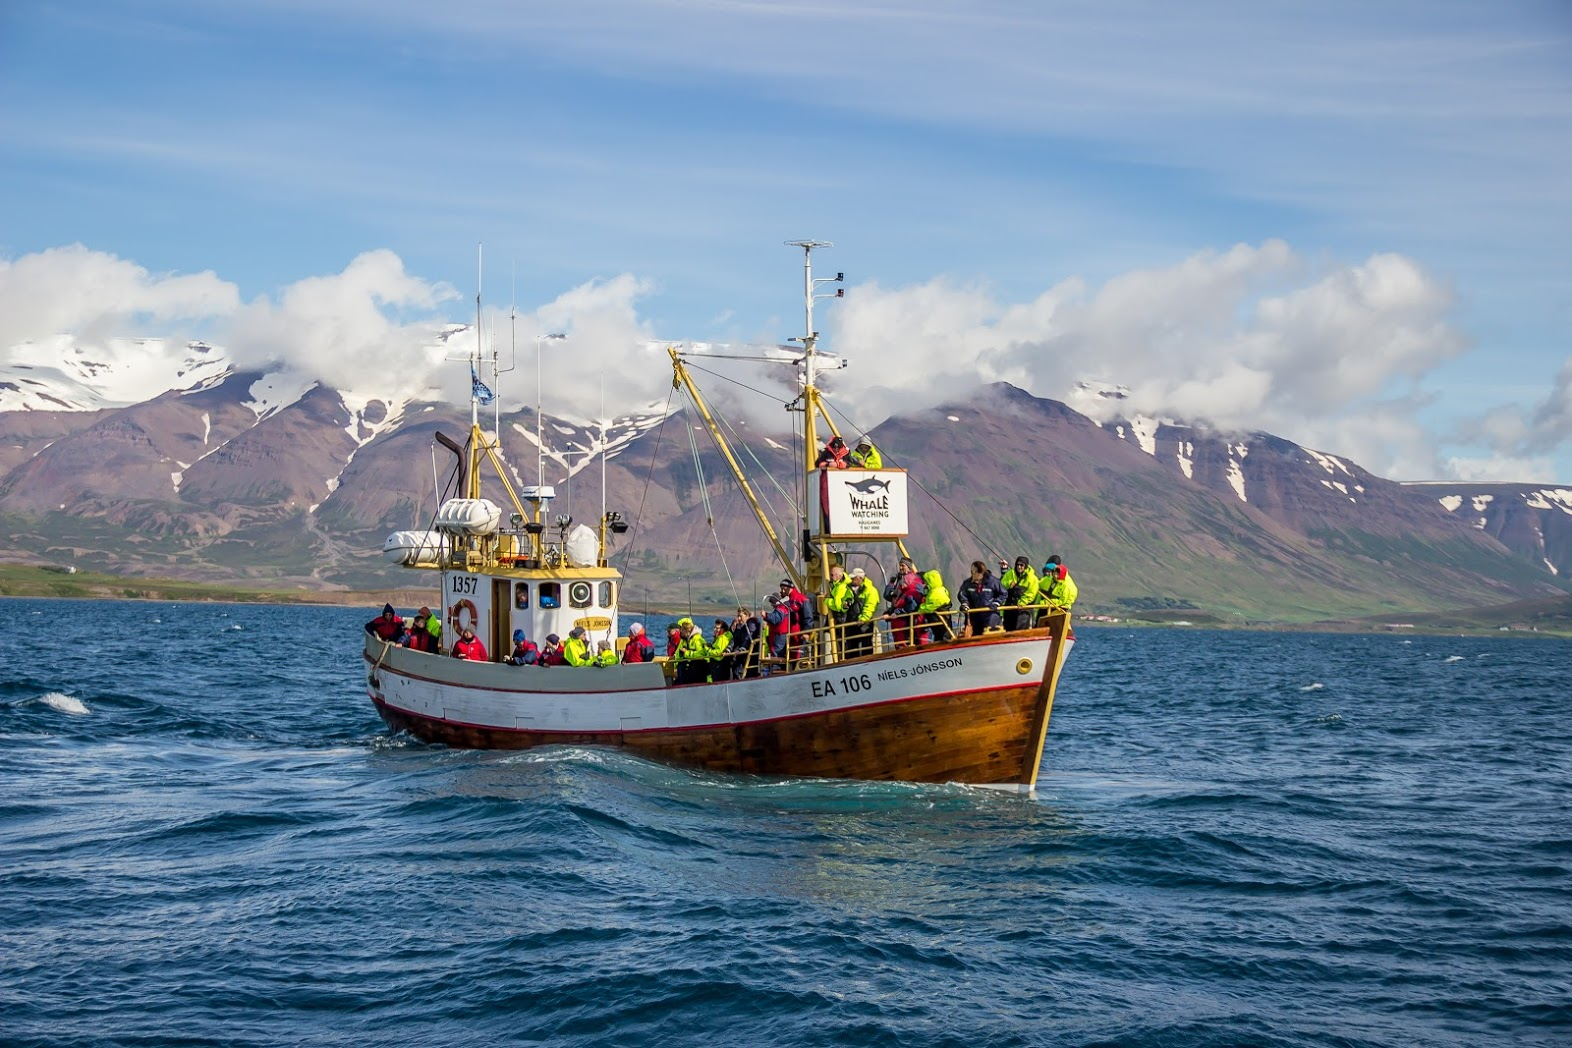 North Iceland is a great location for whale watching and has one of the highest success rates.